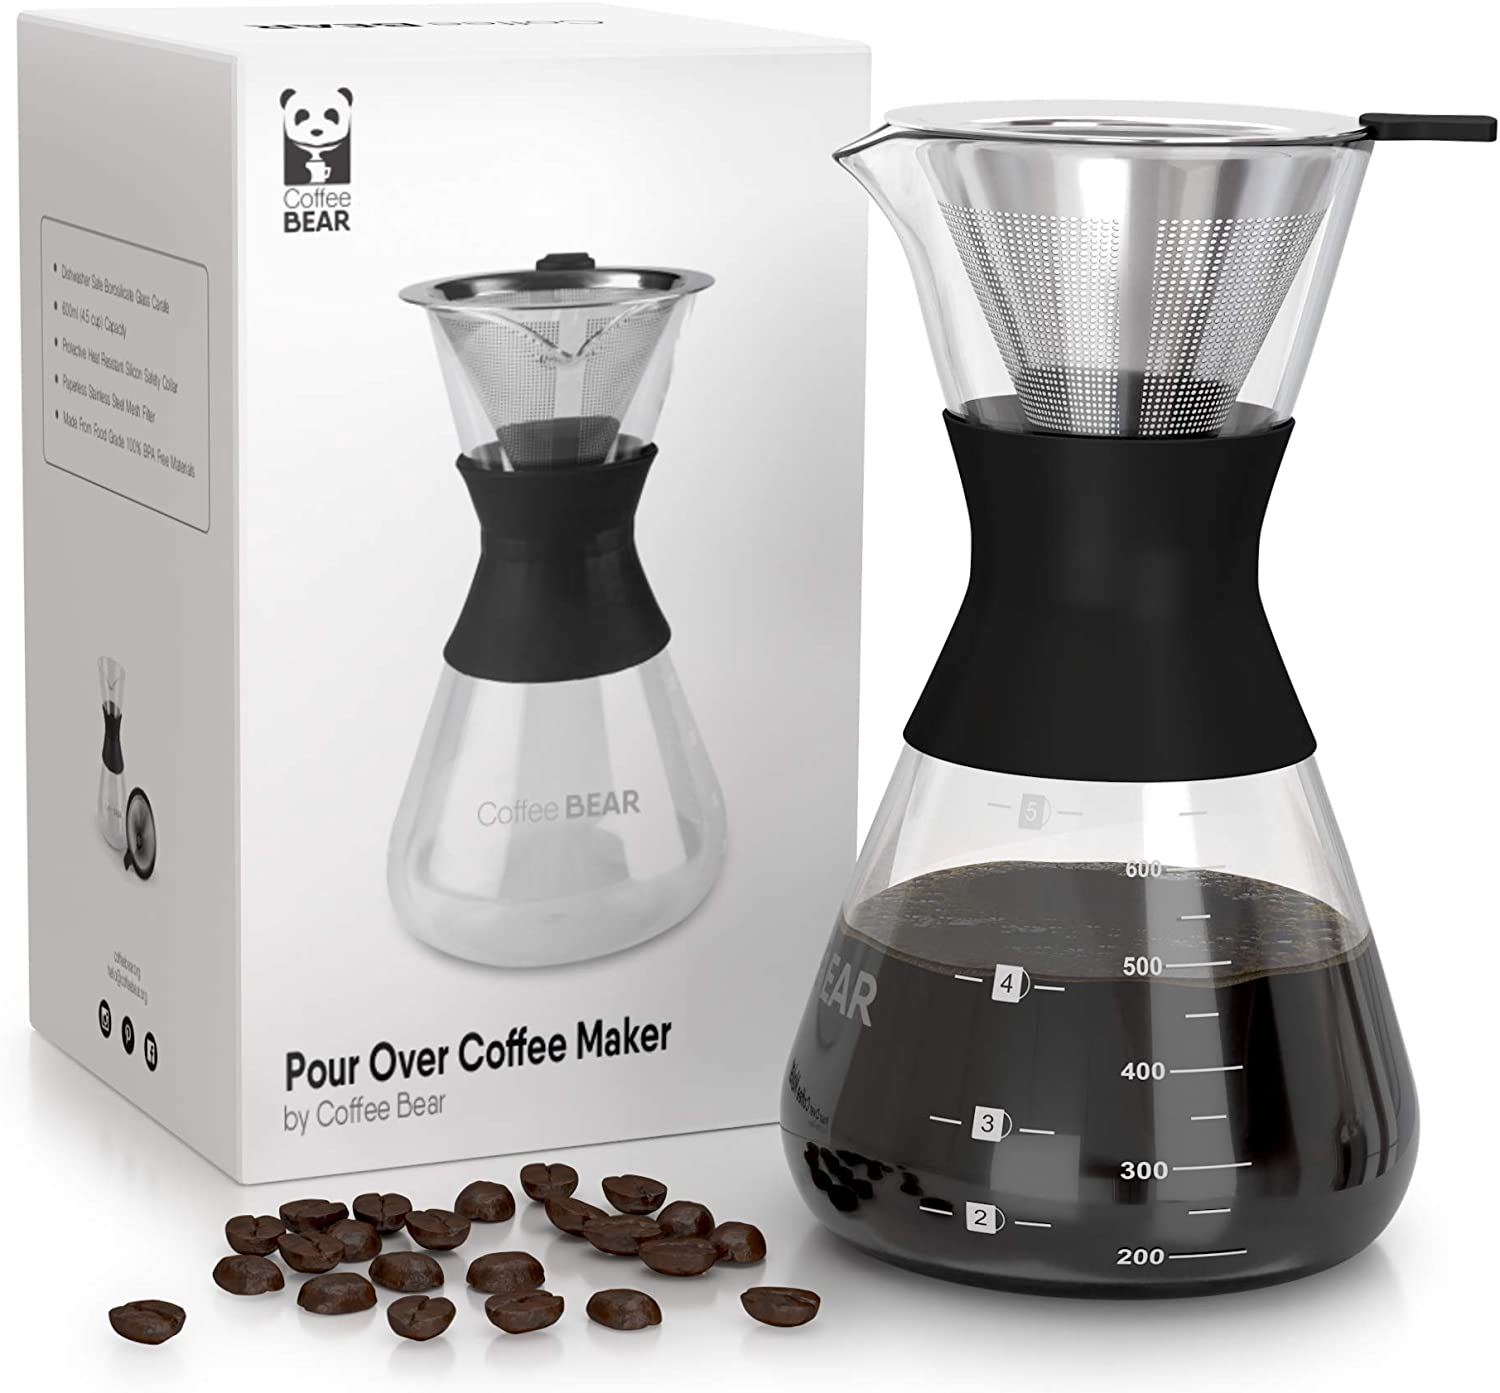 Pour Over Coffee Maker By Coffee Bear - Reusable Stainless Steel Filter - 3 Cup Borosilicate Glass Coffee Dripper Set